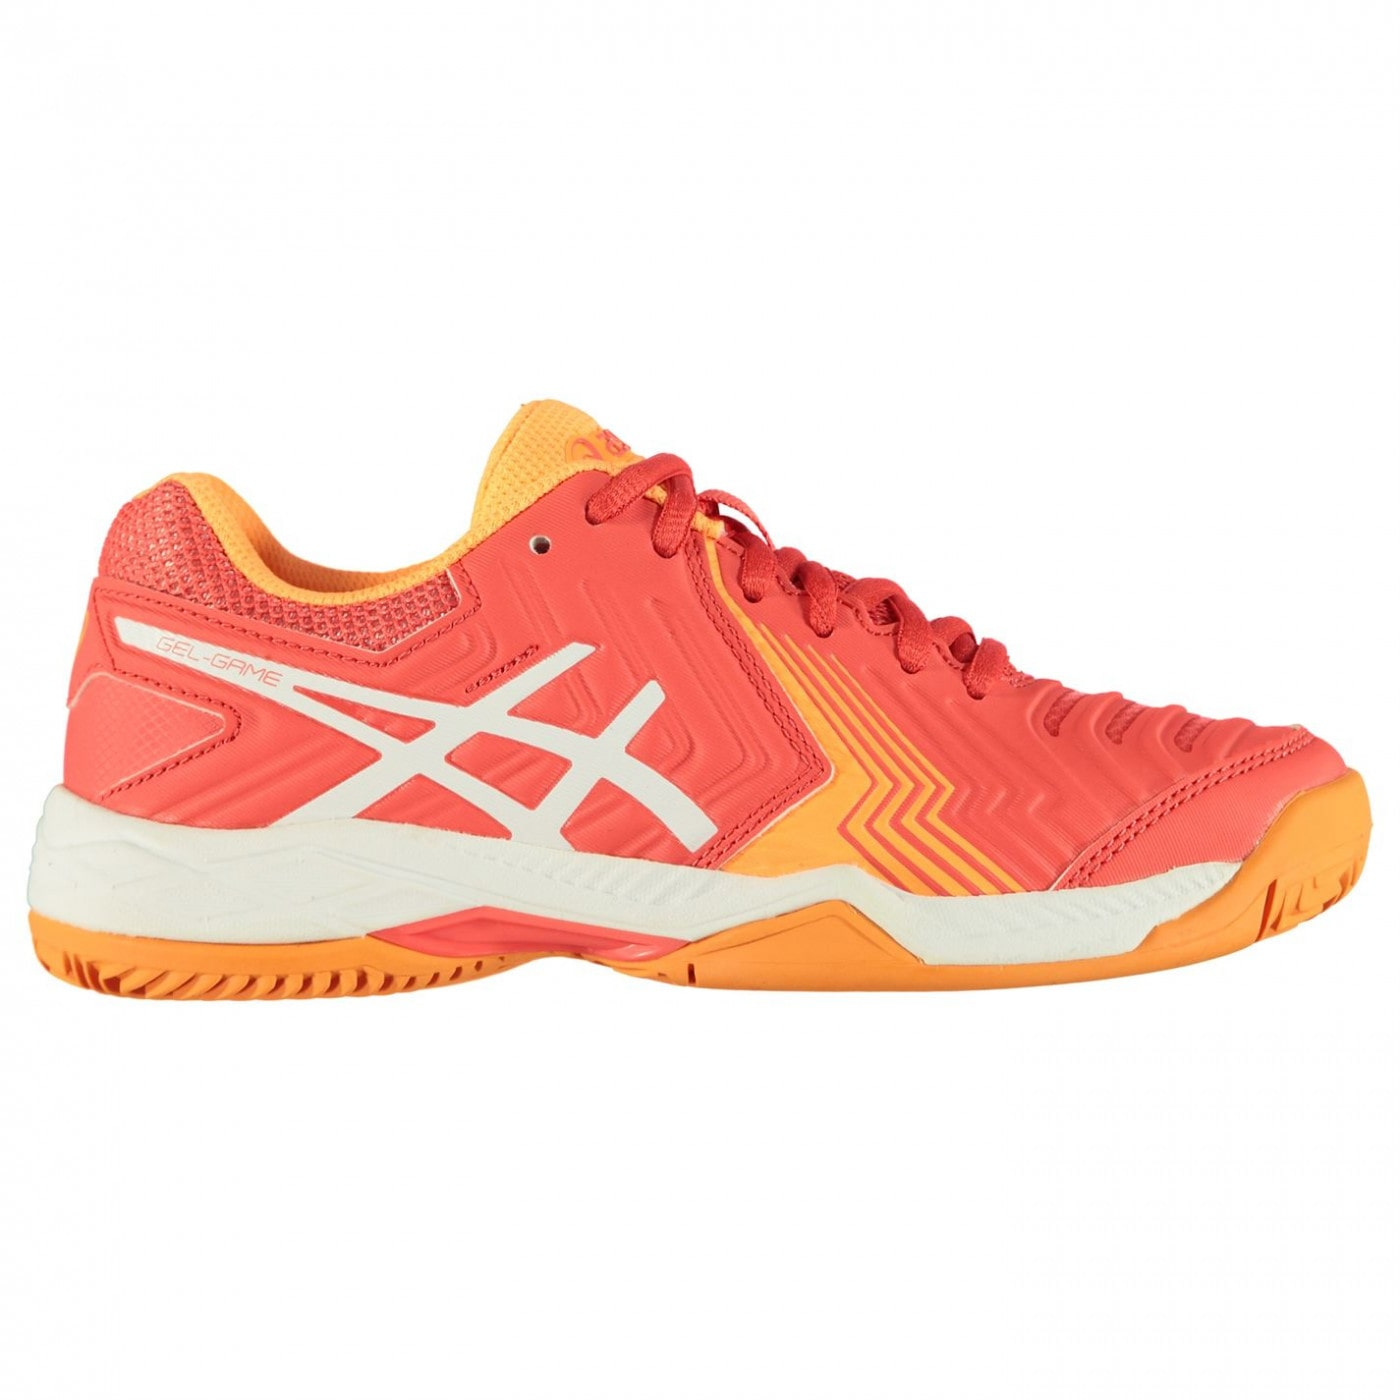 Asics GEL Game 6 Clay Ladies Tennis Shoes